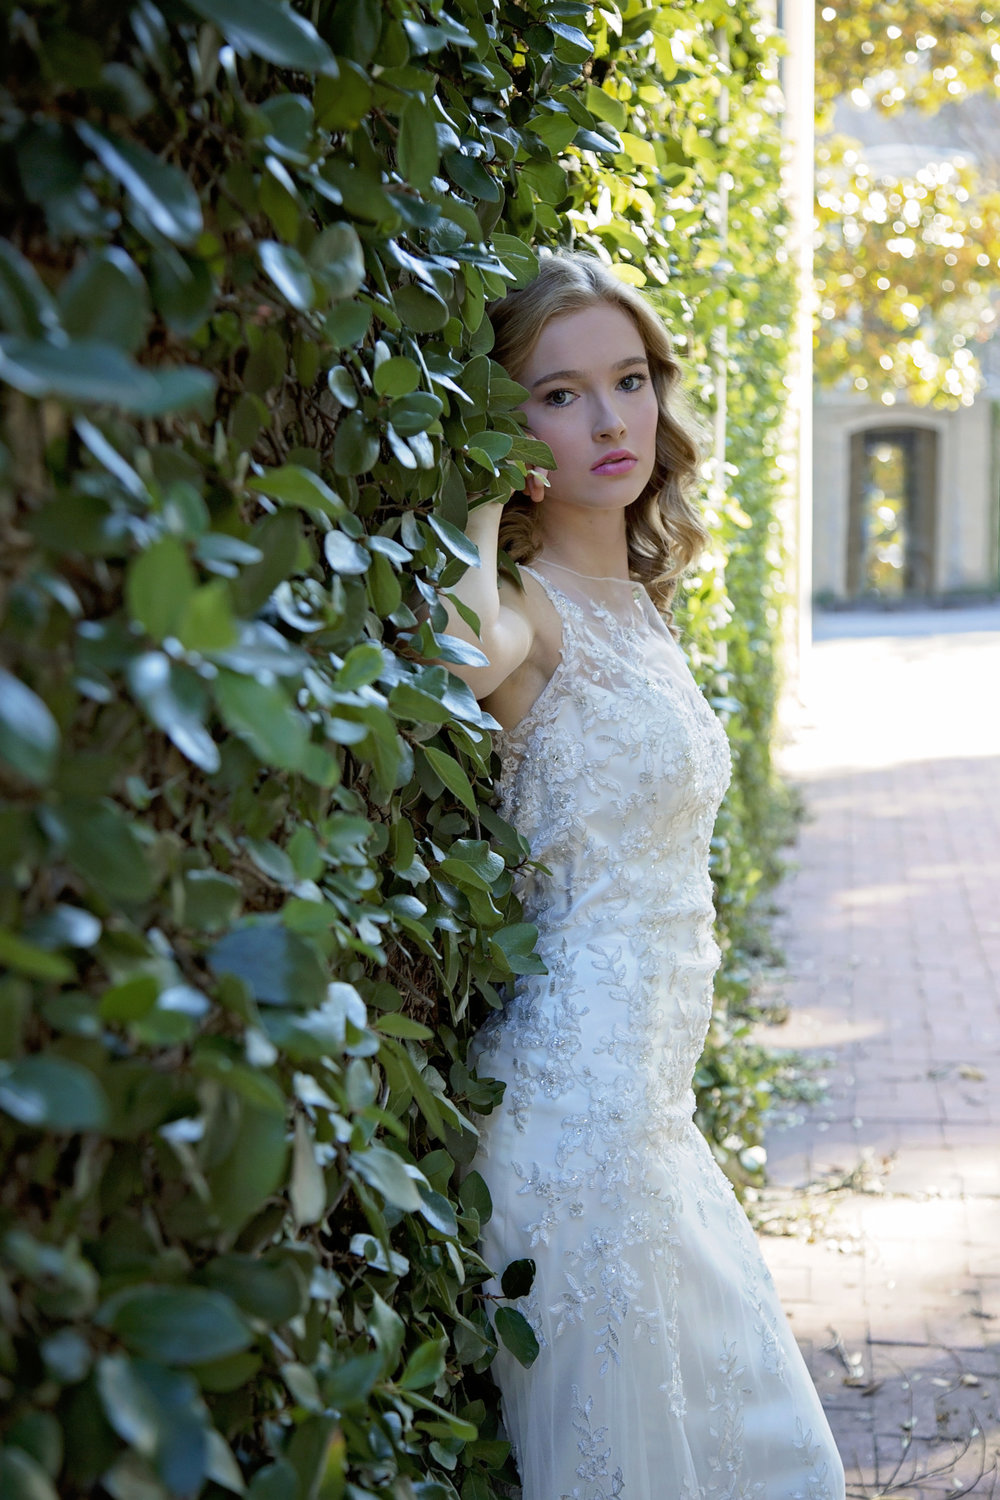 rustik-image-photography-savannah-wedding-photographer-maggie-sottero-tami-savannah-bridal-boutique-ivory-and-beau-bridal-boutique-savannah-wedding-florist-savannah-bridal-shop-savannah-weddings-savannah-gowns-11.jpg